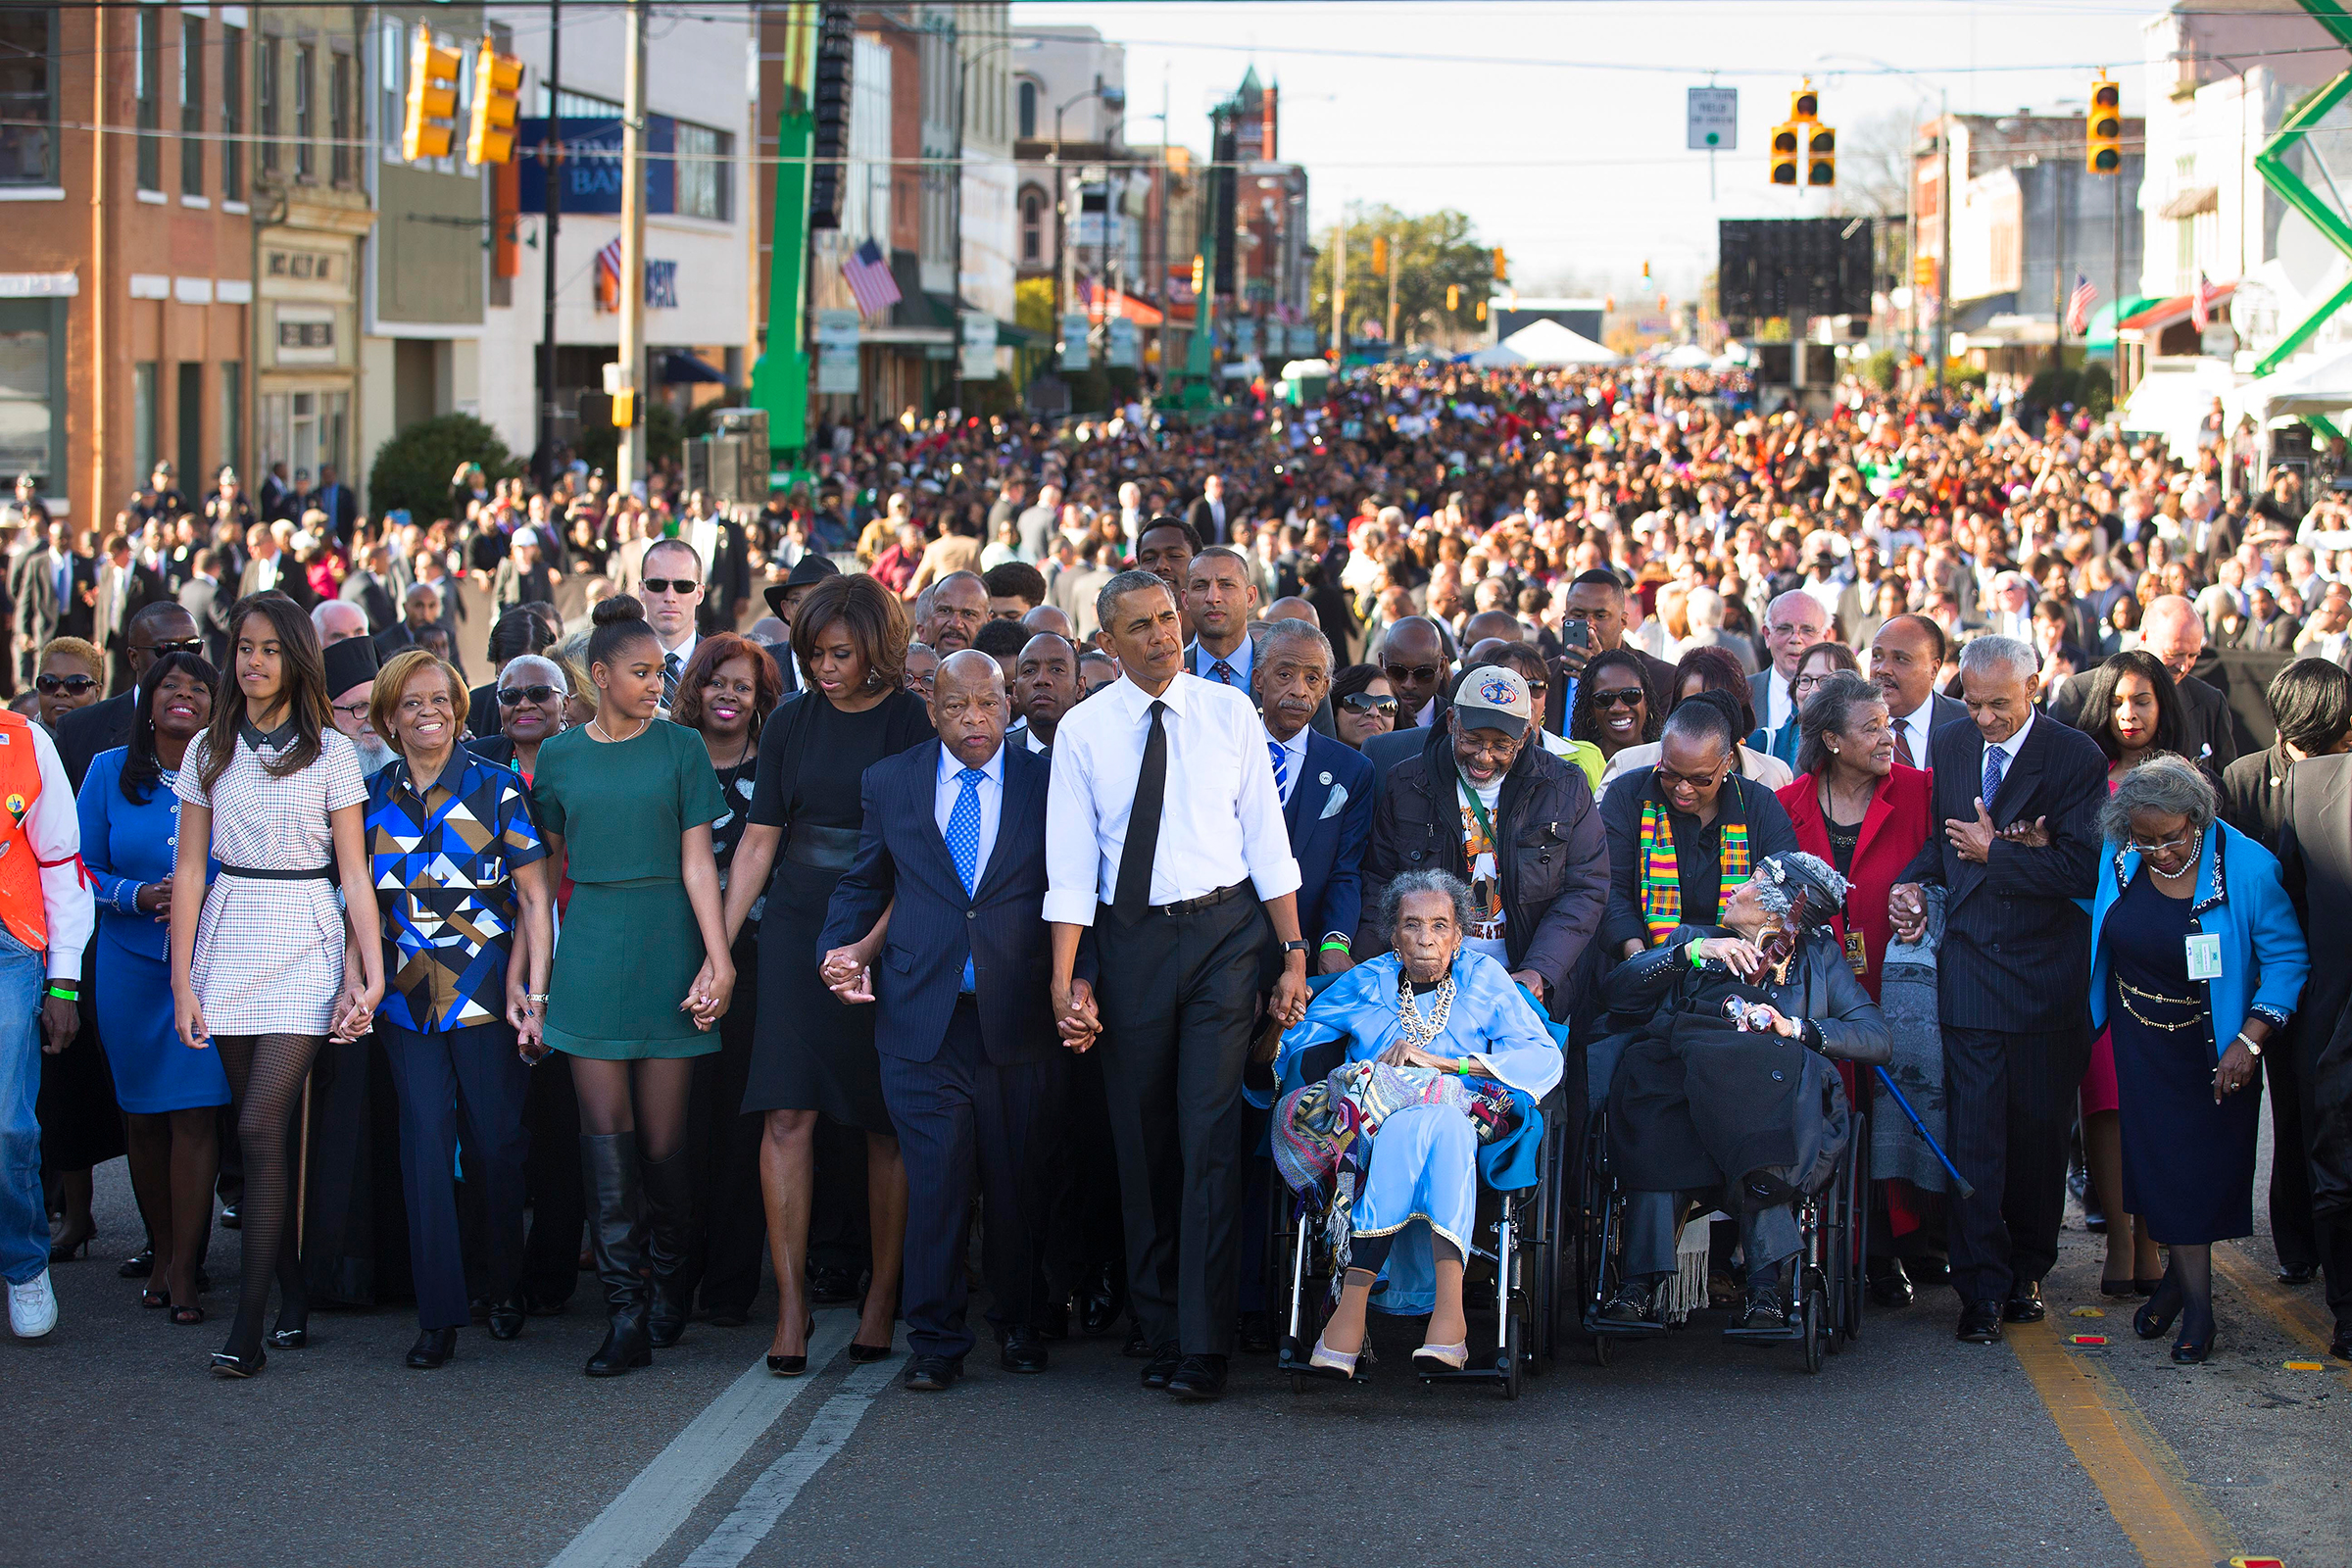 Barack Obama, Amelia Boynton, right, Rep. John Lewis and the President's family lead a march toward the Edmund Pettus Bridge in Selma, Ala., on March 7, 2015, 50 years after  Bloody Sunday.